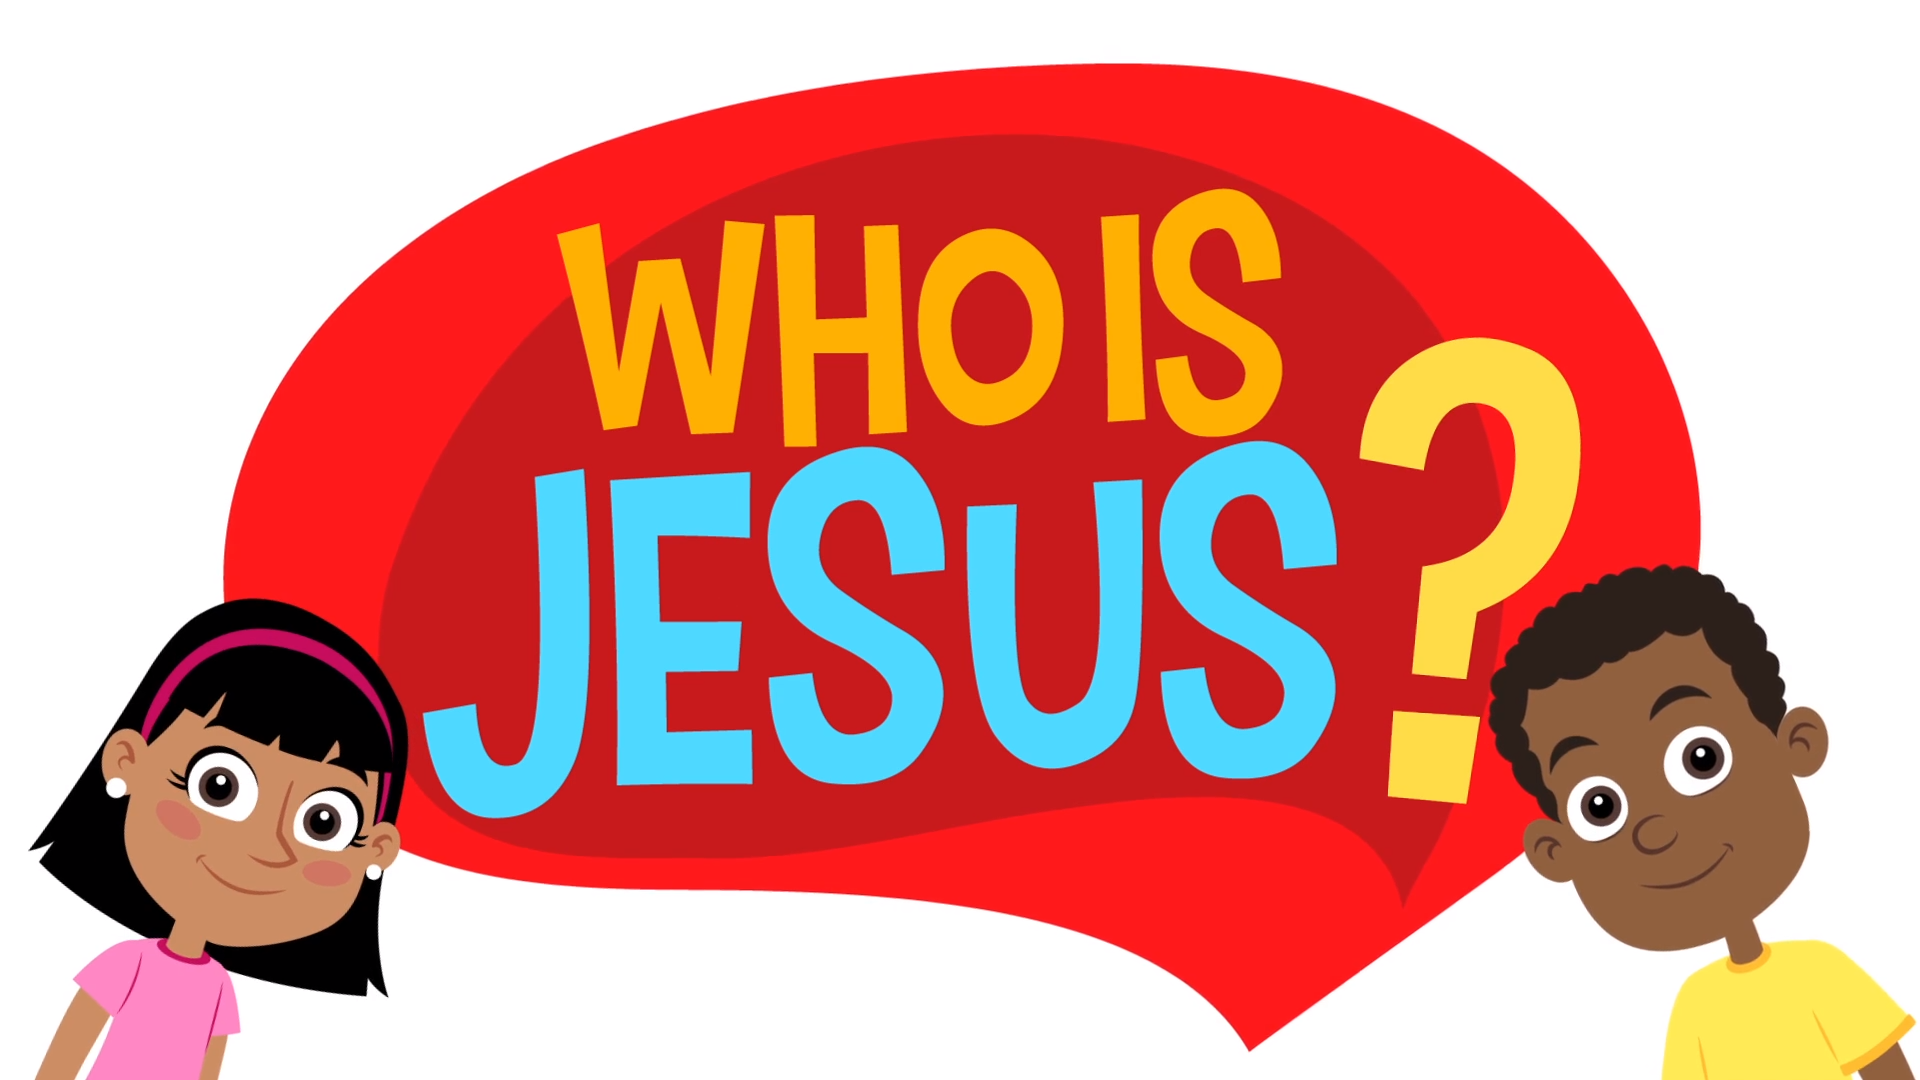 Lesson 02 - Who is Jesus?